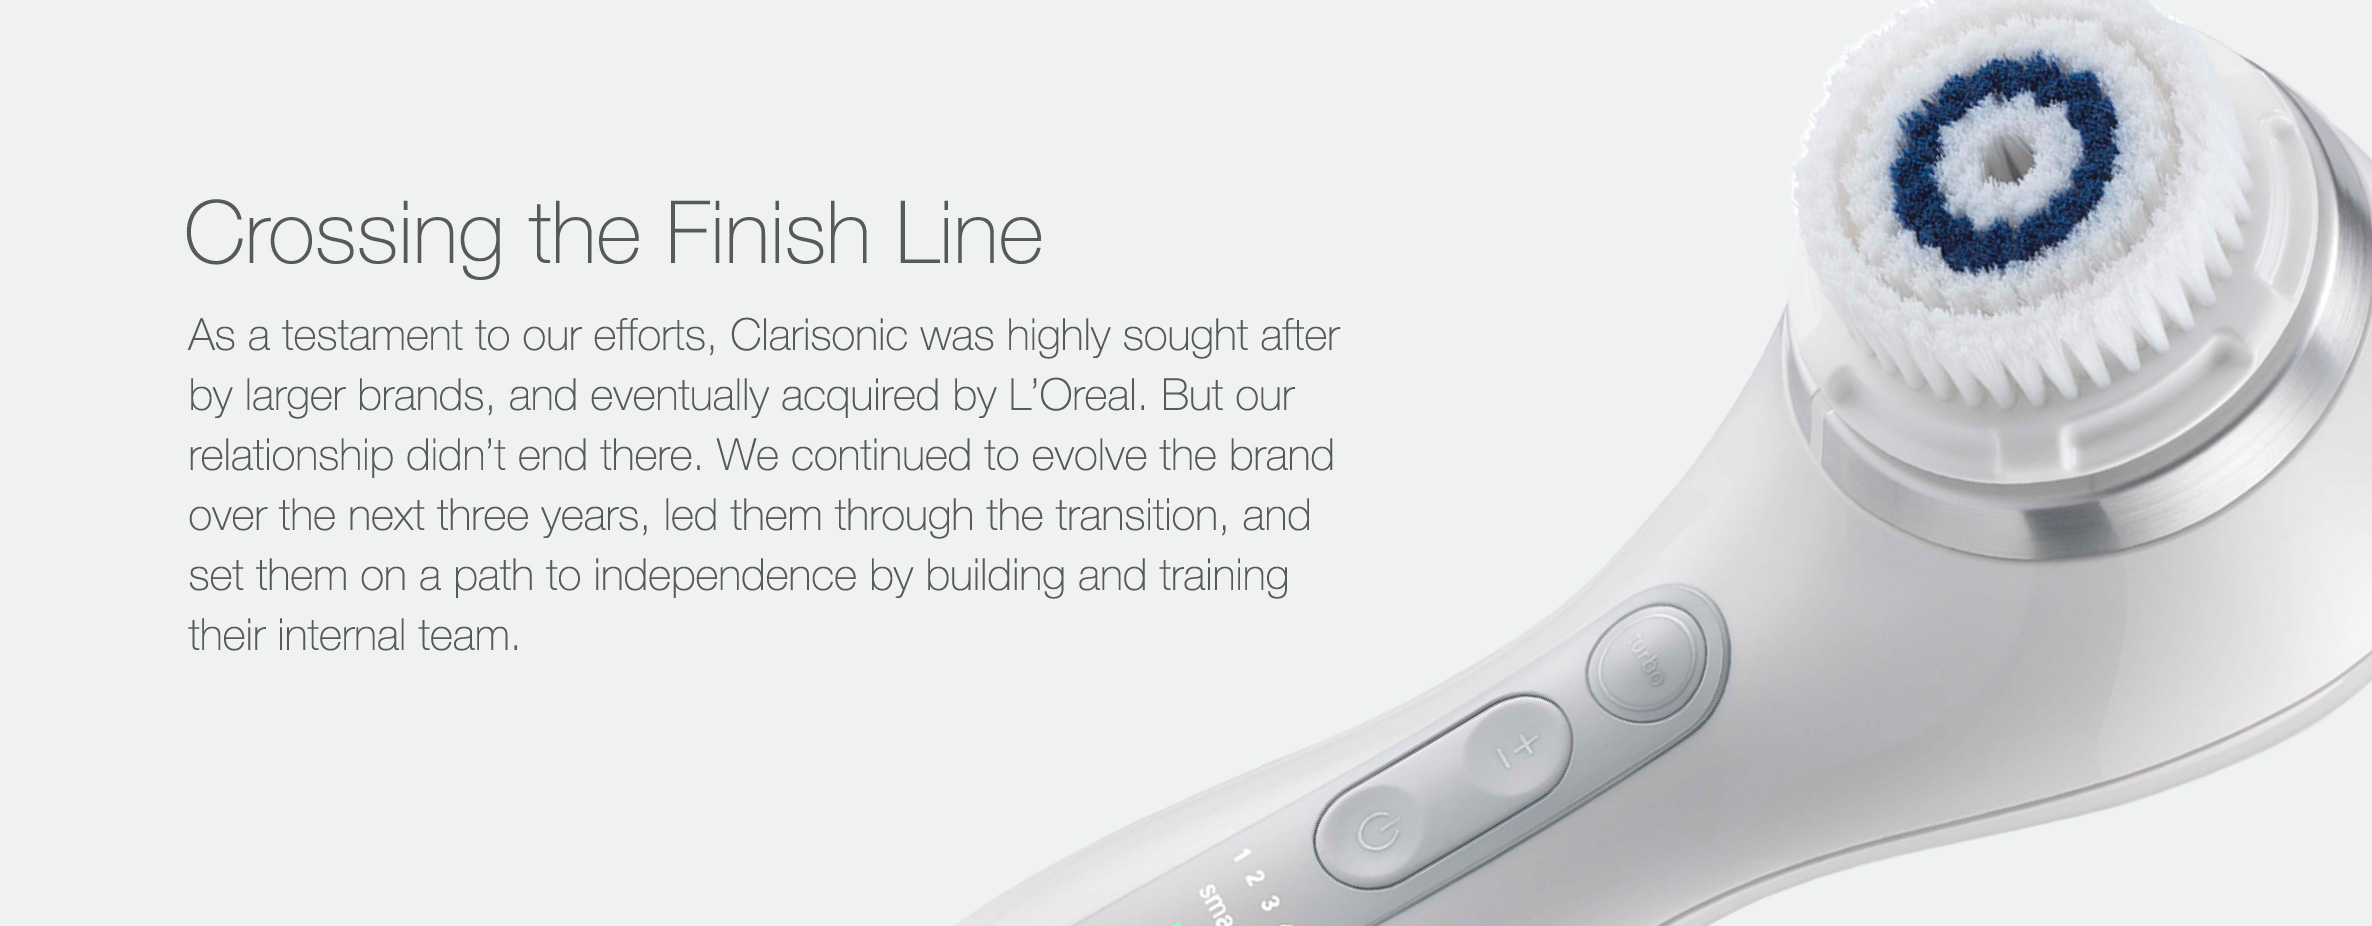 As a testament to our efforts, Clarisonic was highly sought after by larger brands, and eventually acquired by L'Oreal. But our relationship didn't end there. We continued to evolve the brand over the next three years, led them through the transition, and set them on a path to independence by building and training their internal team.